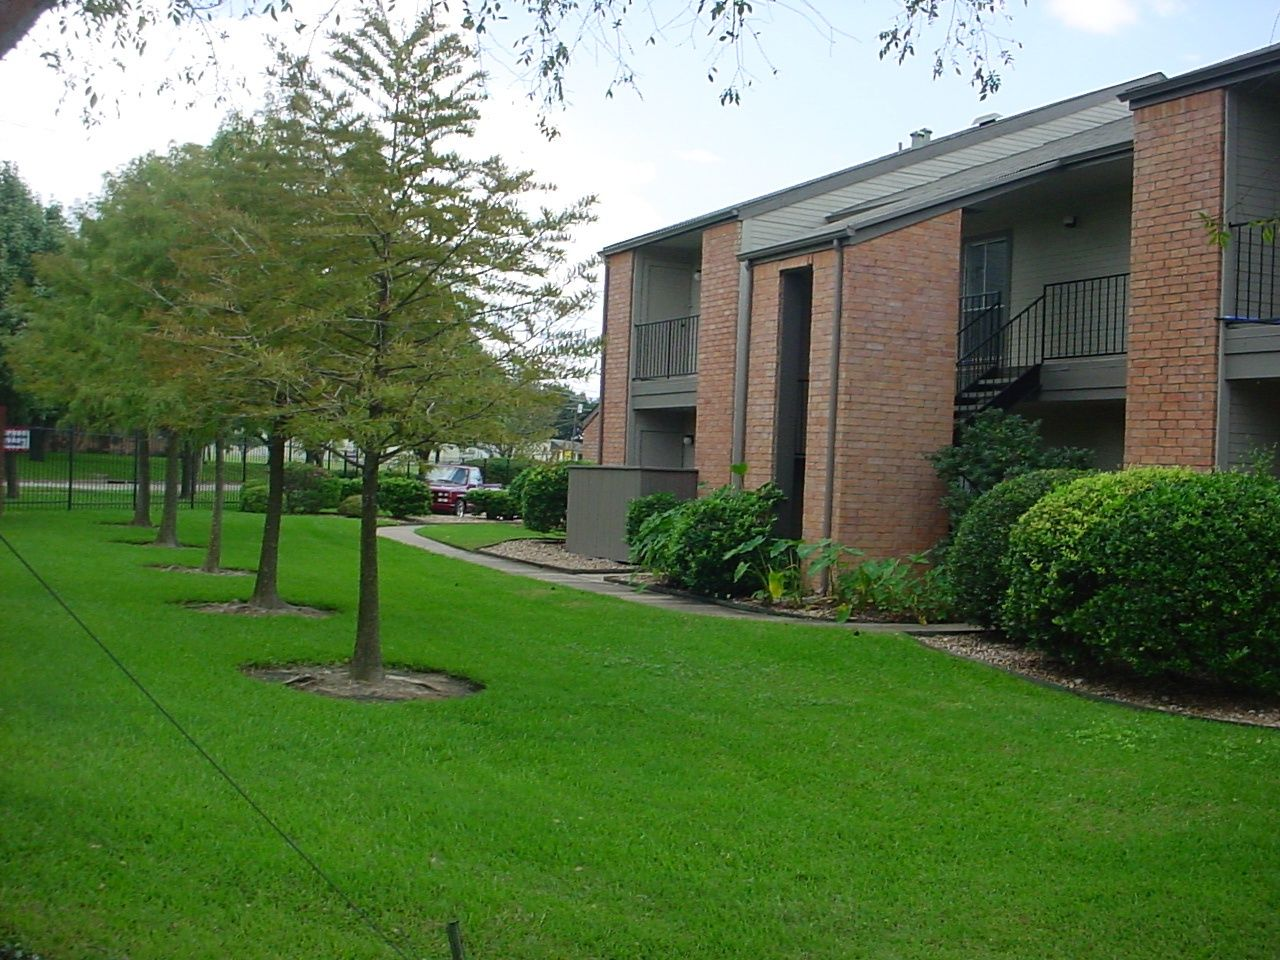 Brookside apartments in Bryan, Texas